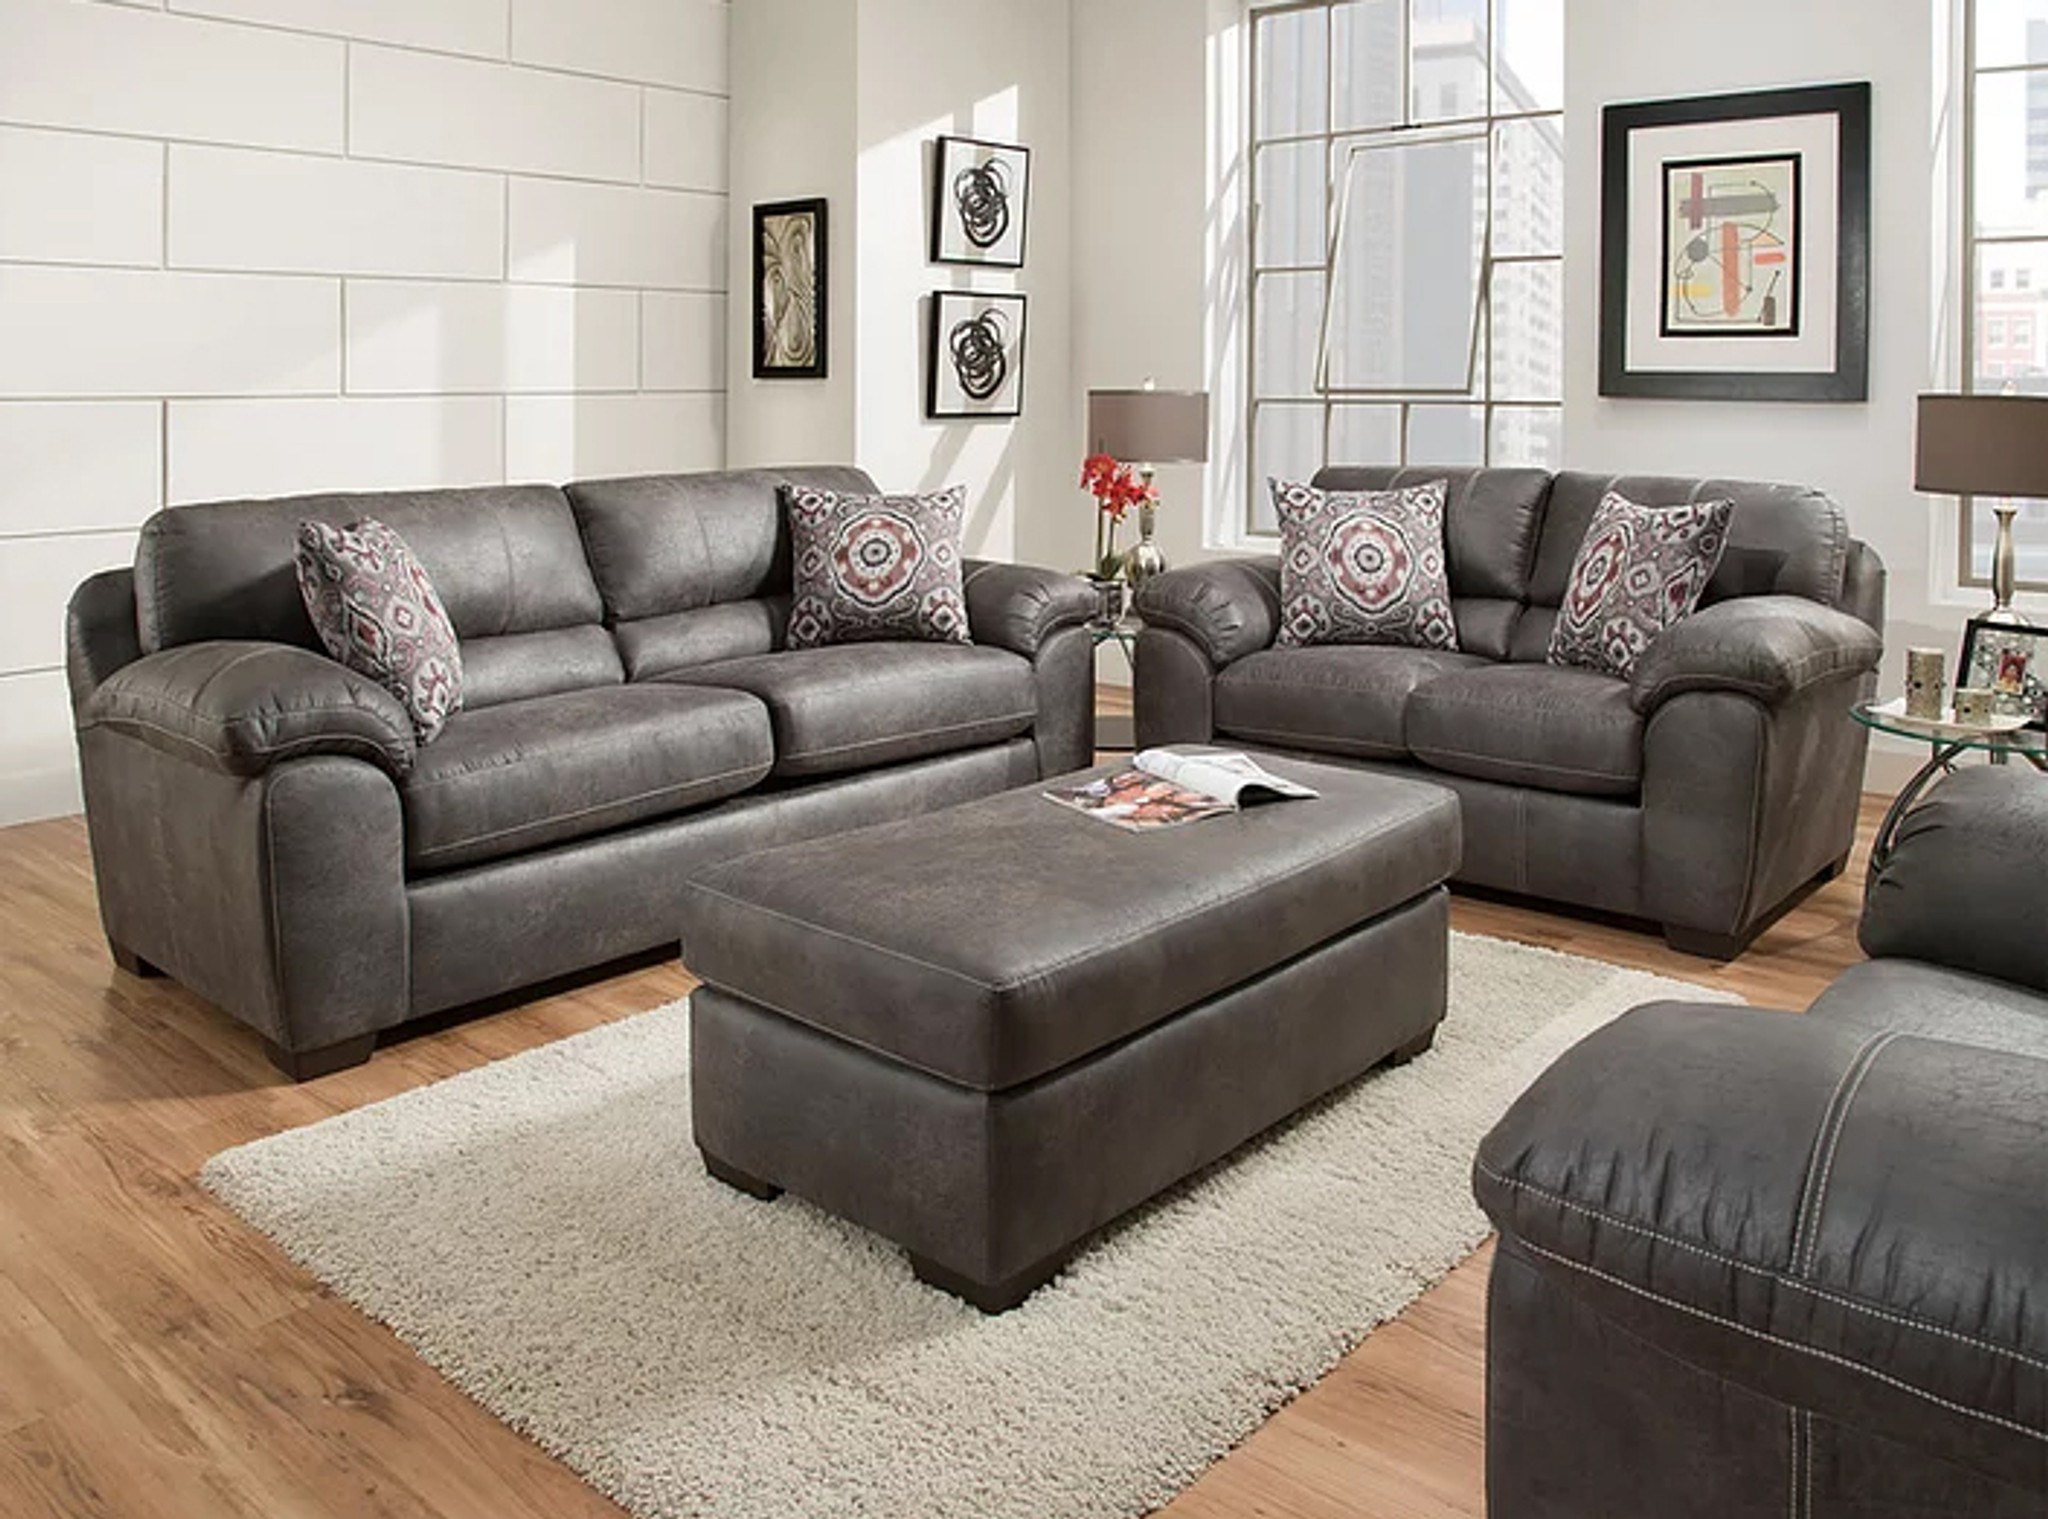 Awe Inspiring 2 Pcs Santa Fe Grey Sofa Loveseat Set Interior Design Ideas Clesiryabchikinfo